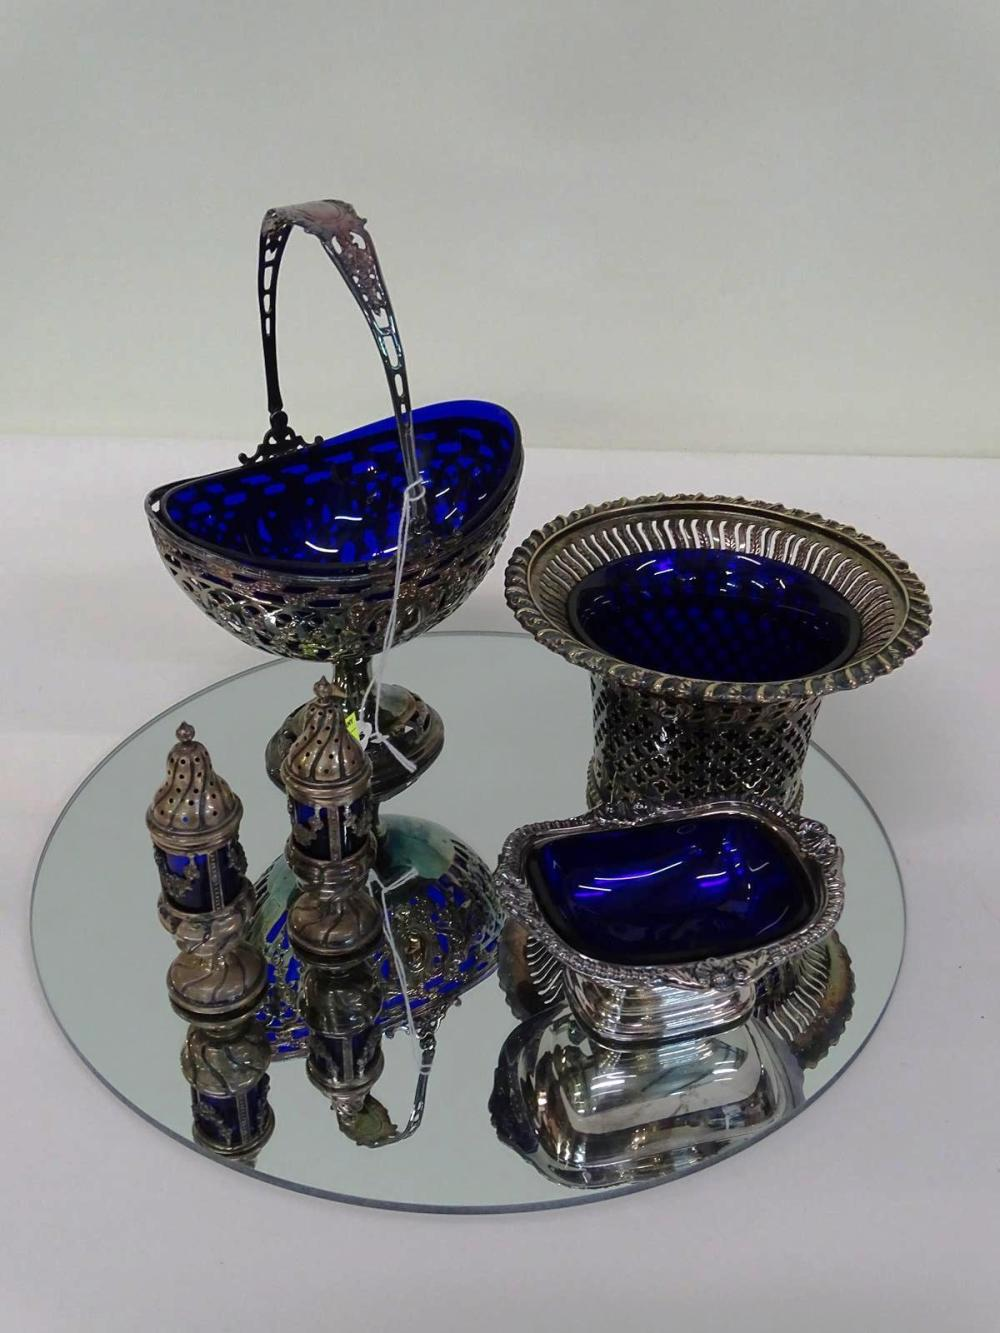 GROUPING OF SILVERPLATE/COBALT ITEMS